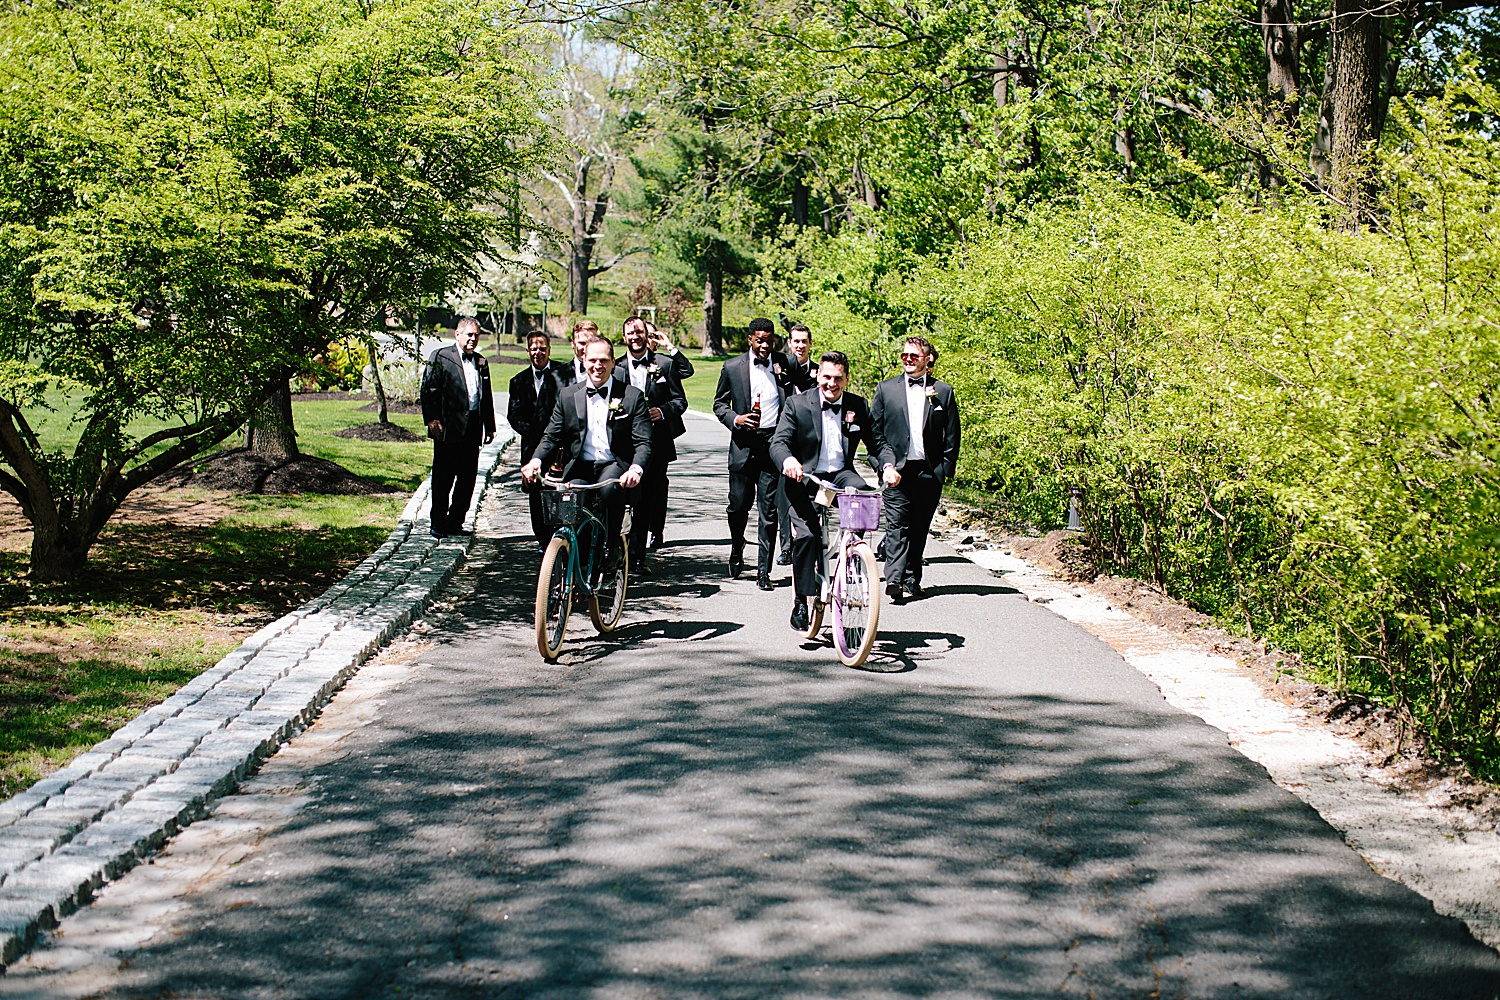 caitlingmarc_hotelduvillage_newhope_estate_spring_wedding)image027.jpg